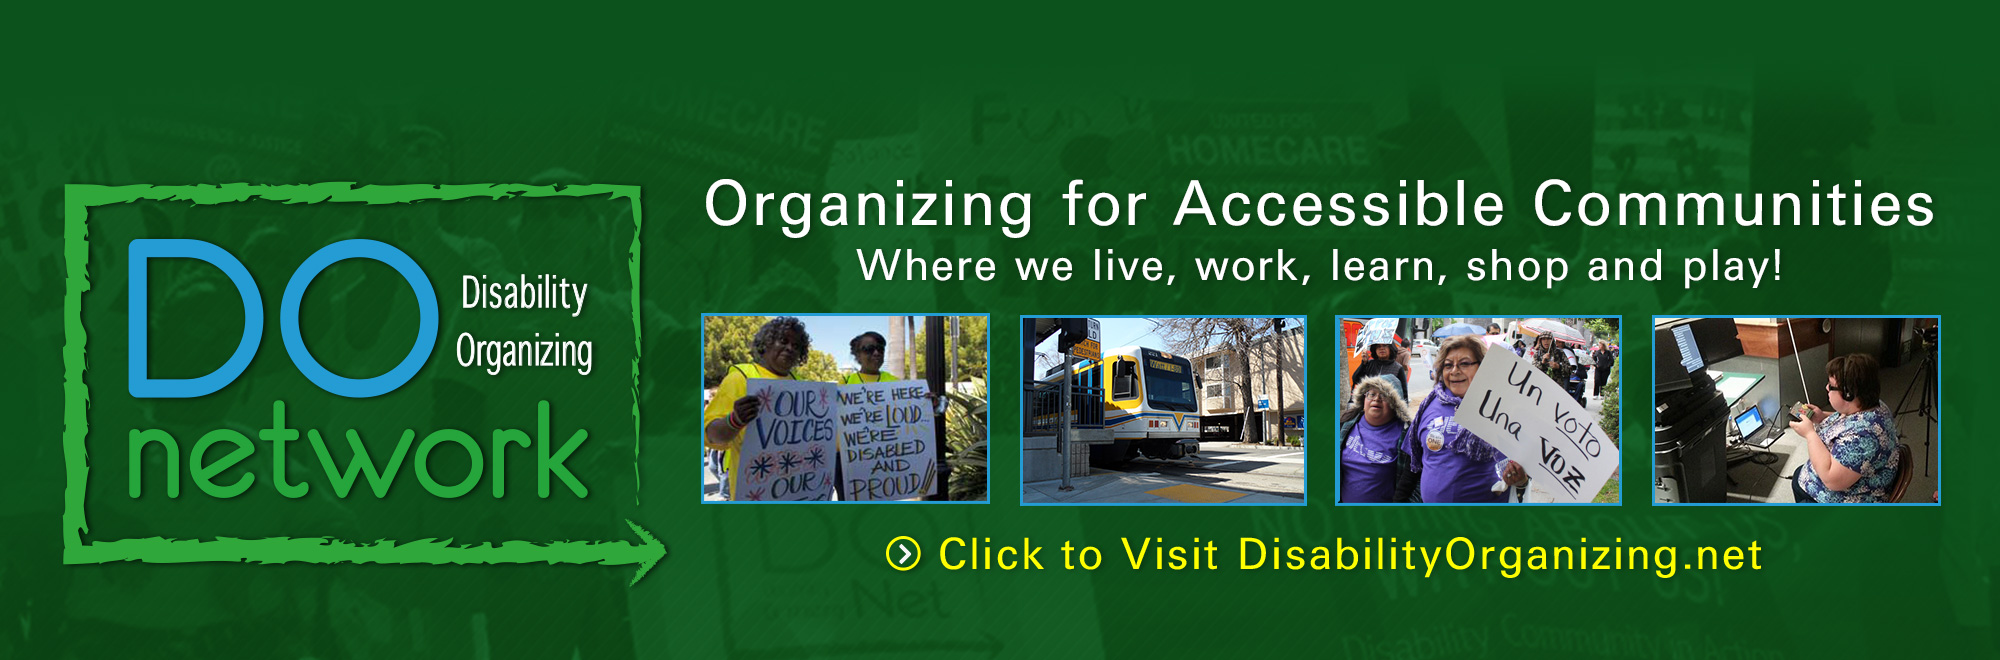 Banner of Disability Organizing Network. Organizing for Accessible Communities where we live, work, learn, shop and play! Click to Visit DisabilityOrganizing.net